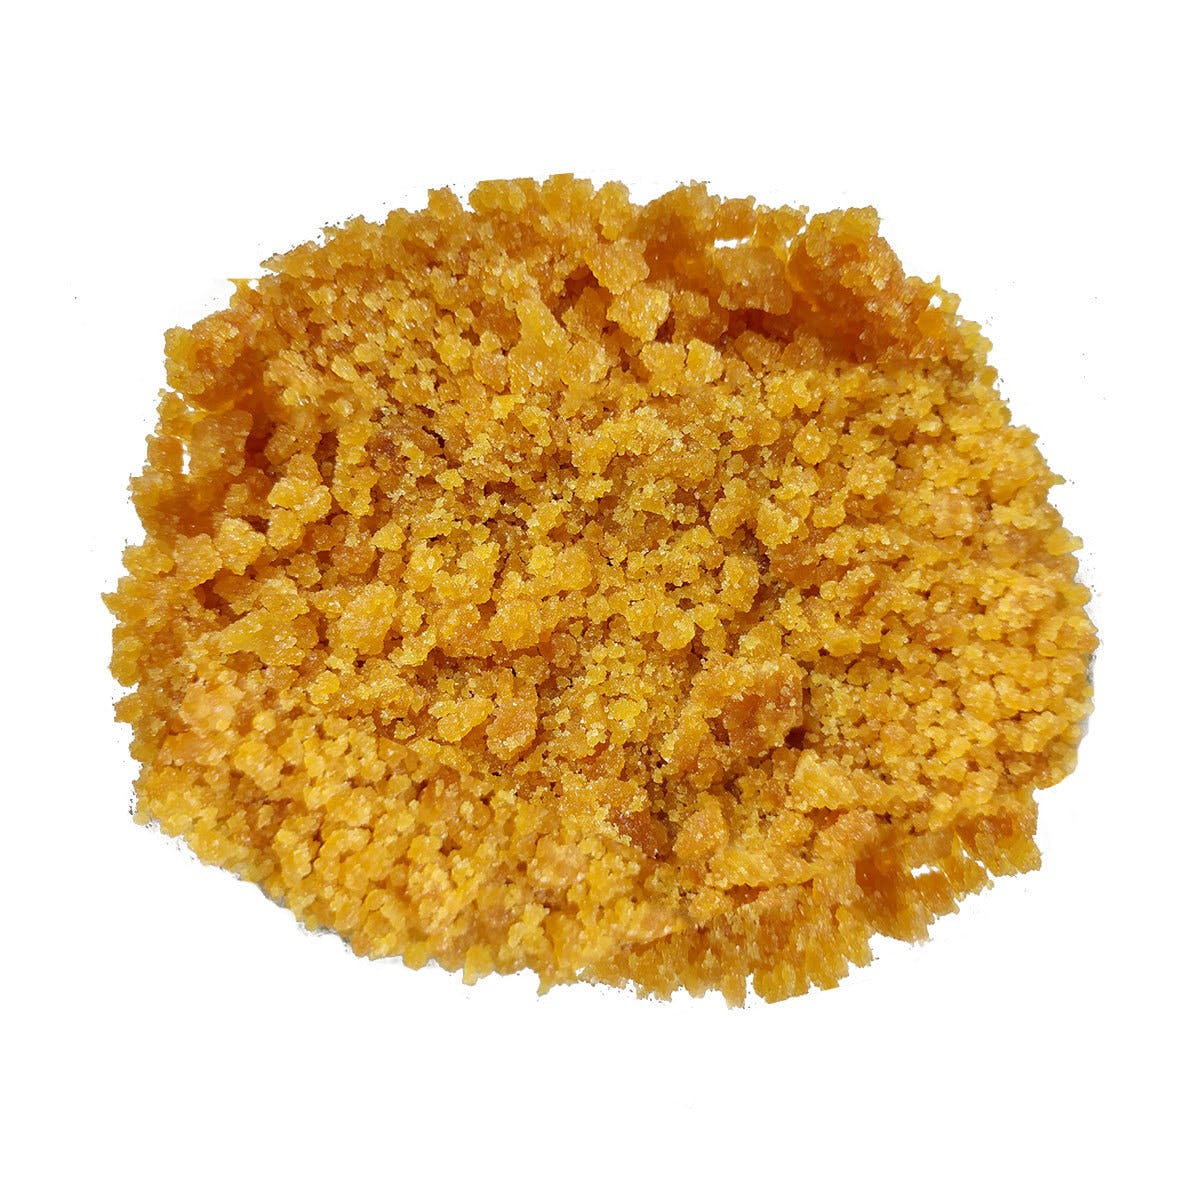 concentrate-made-products-1g-live-resin-ak-48